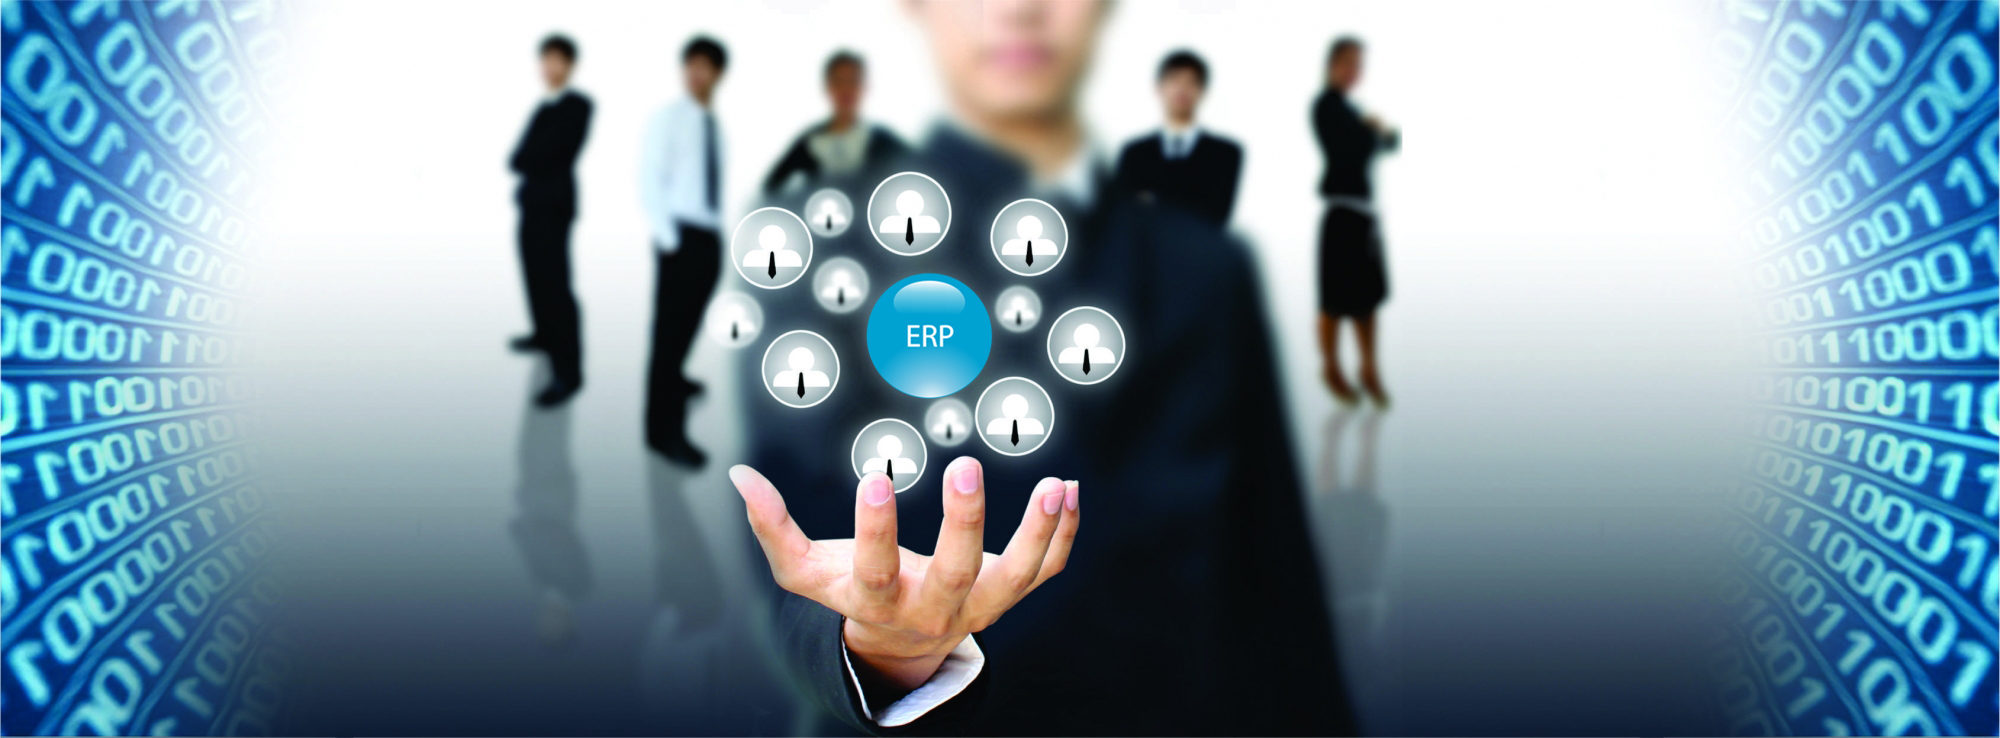 Integrated ERP solution